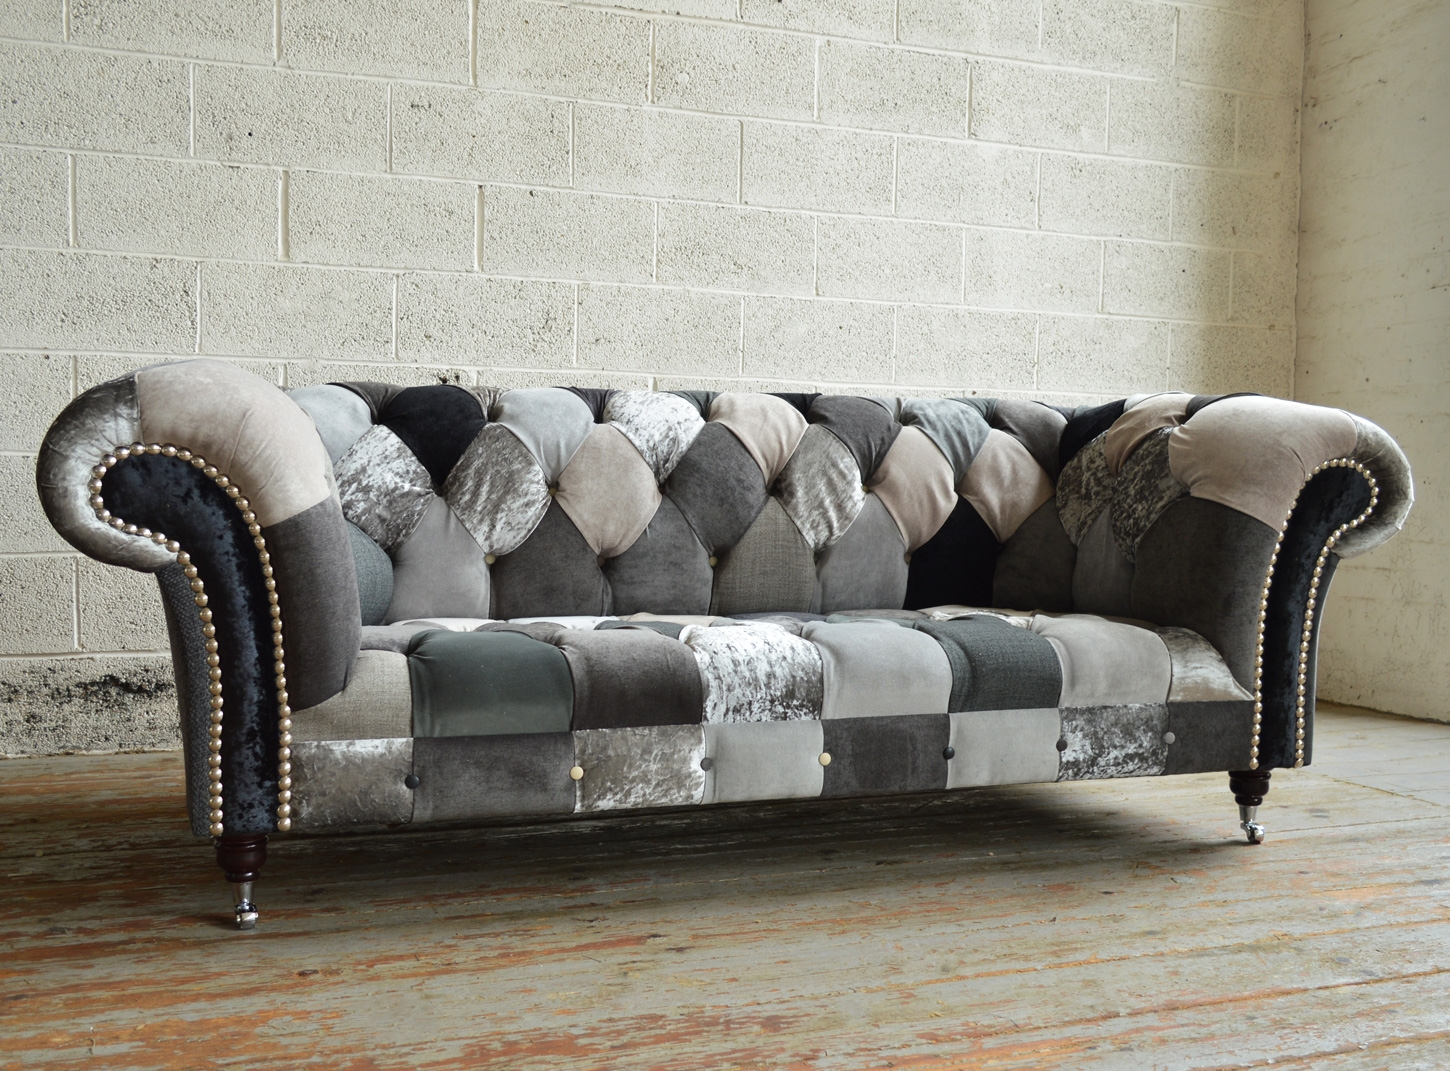 Chester Patchwork Chesterfield Sofa Abode Sofas For Chesterfield Sofas (Image 2 of 15)